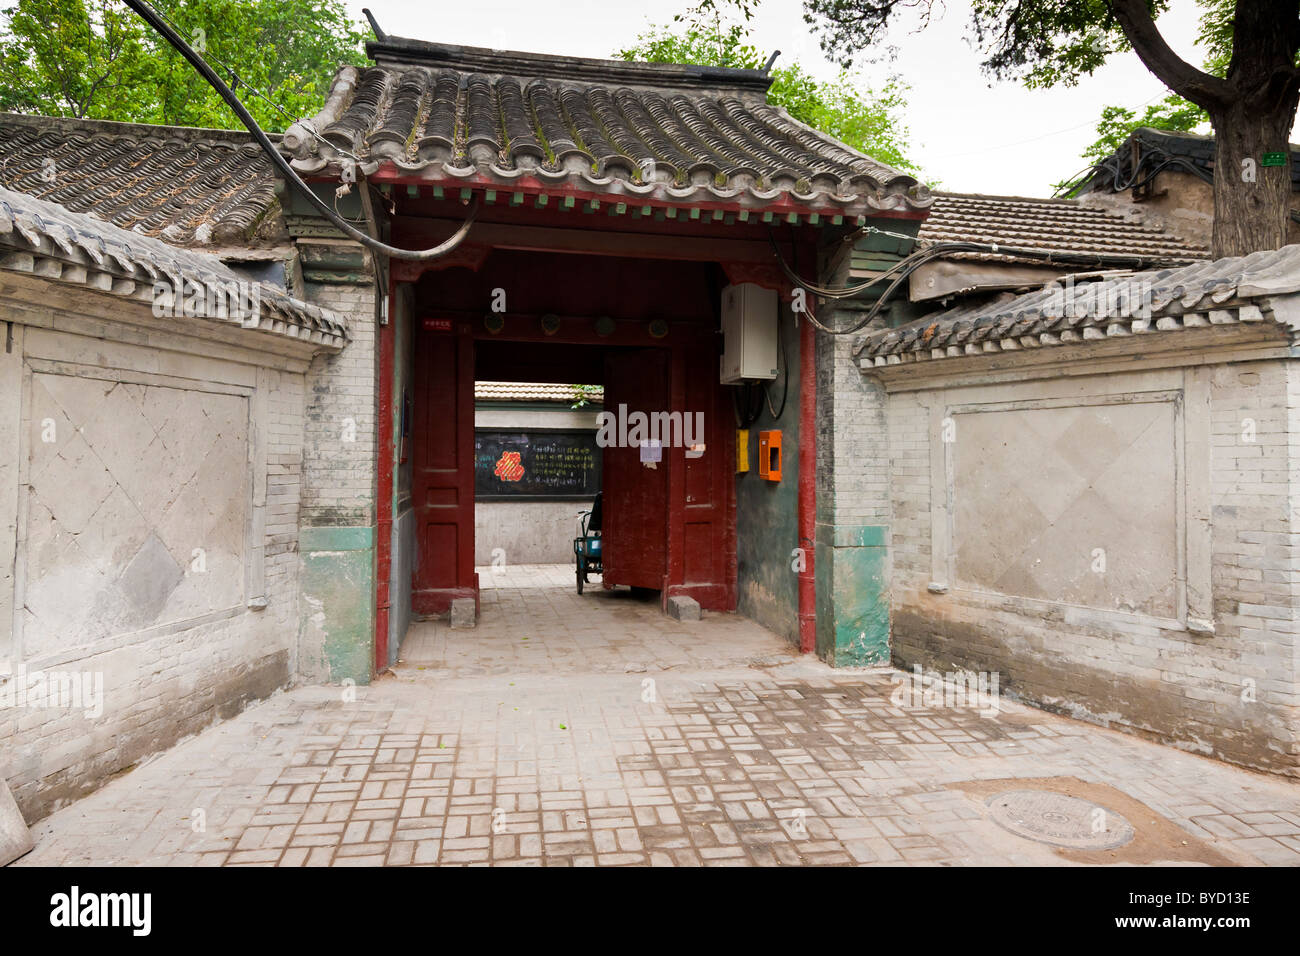 Entrance to house in the Hutong, Beijing, China. JMH4844 - Stock Image